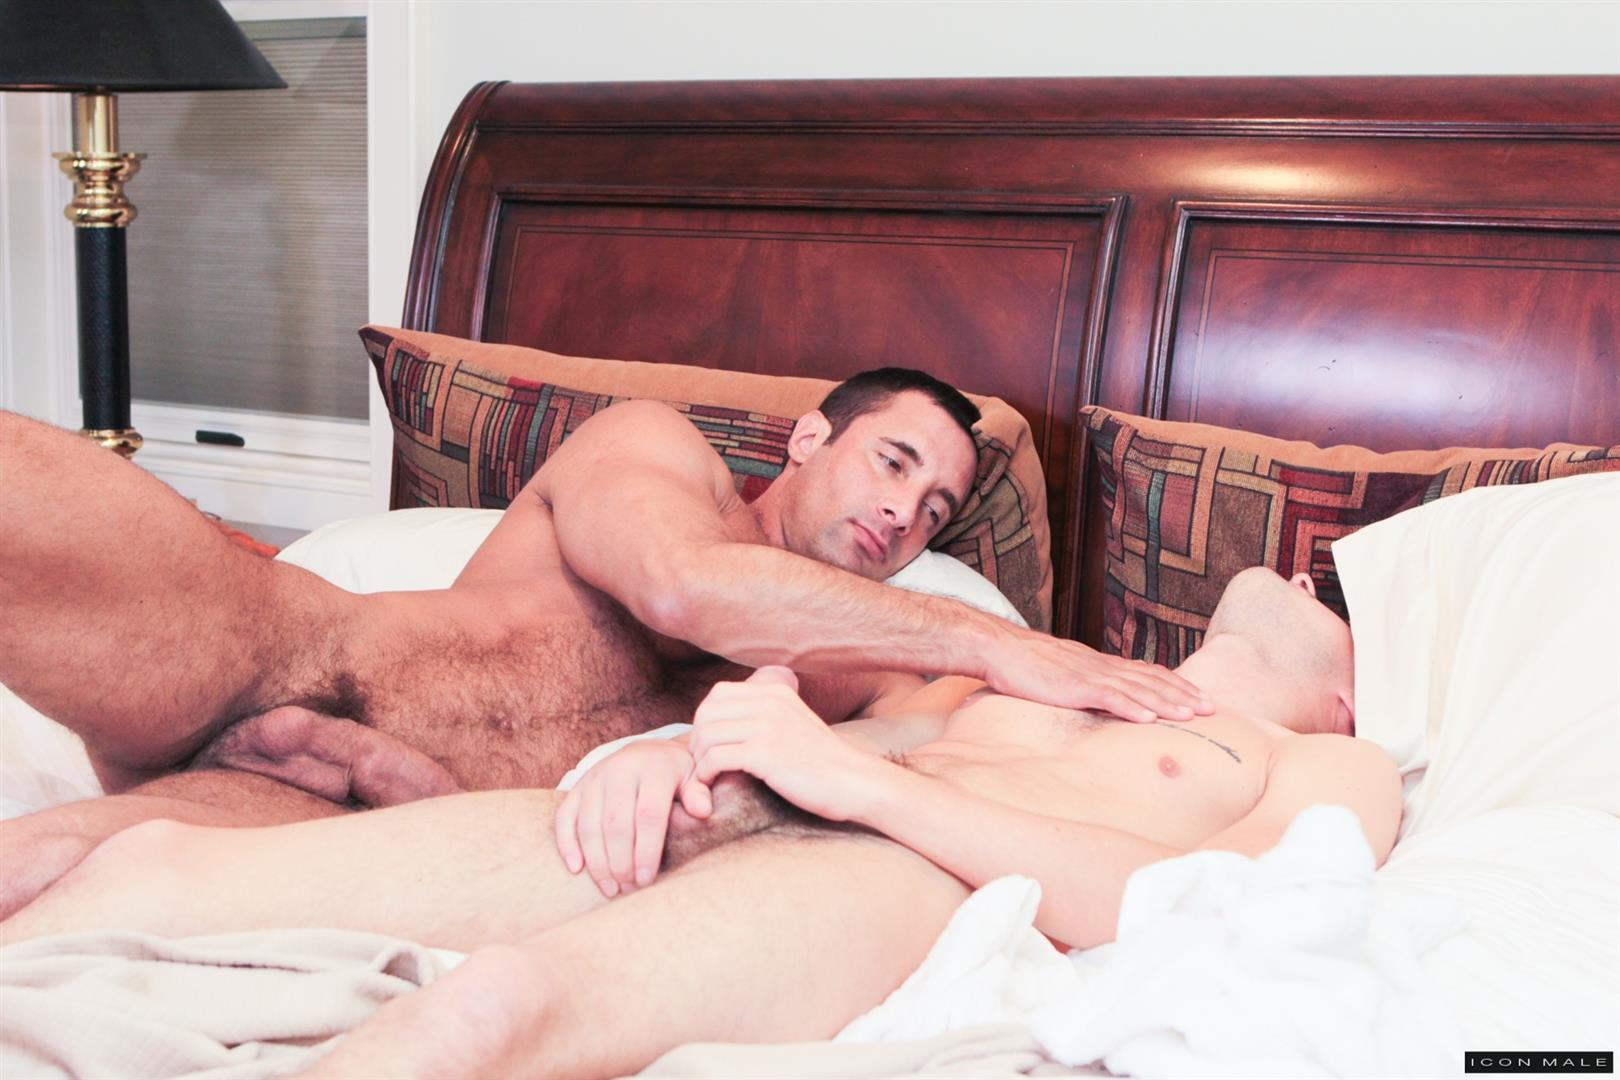 Icon-Male-Nick-Capra-and-Hunter-Hairy-Muscle-Daddy-Fucking-A-Twink-Page-Big-Uncut-Cock-Amateur-Gay-Porn-02 Twink Hunter Page Getting Fucked By Hairy Muscle Daddy Nick Capra